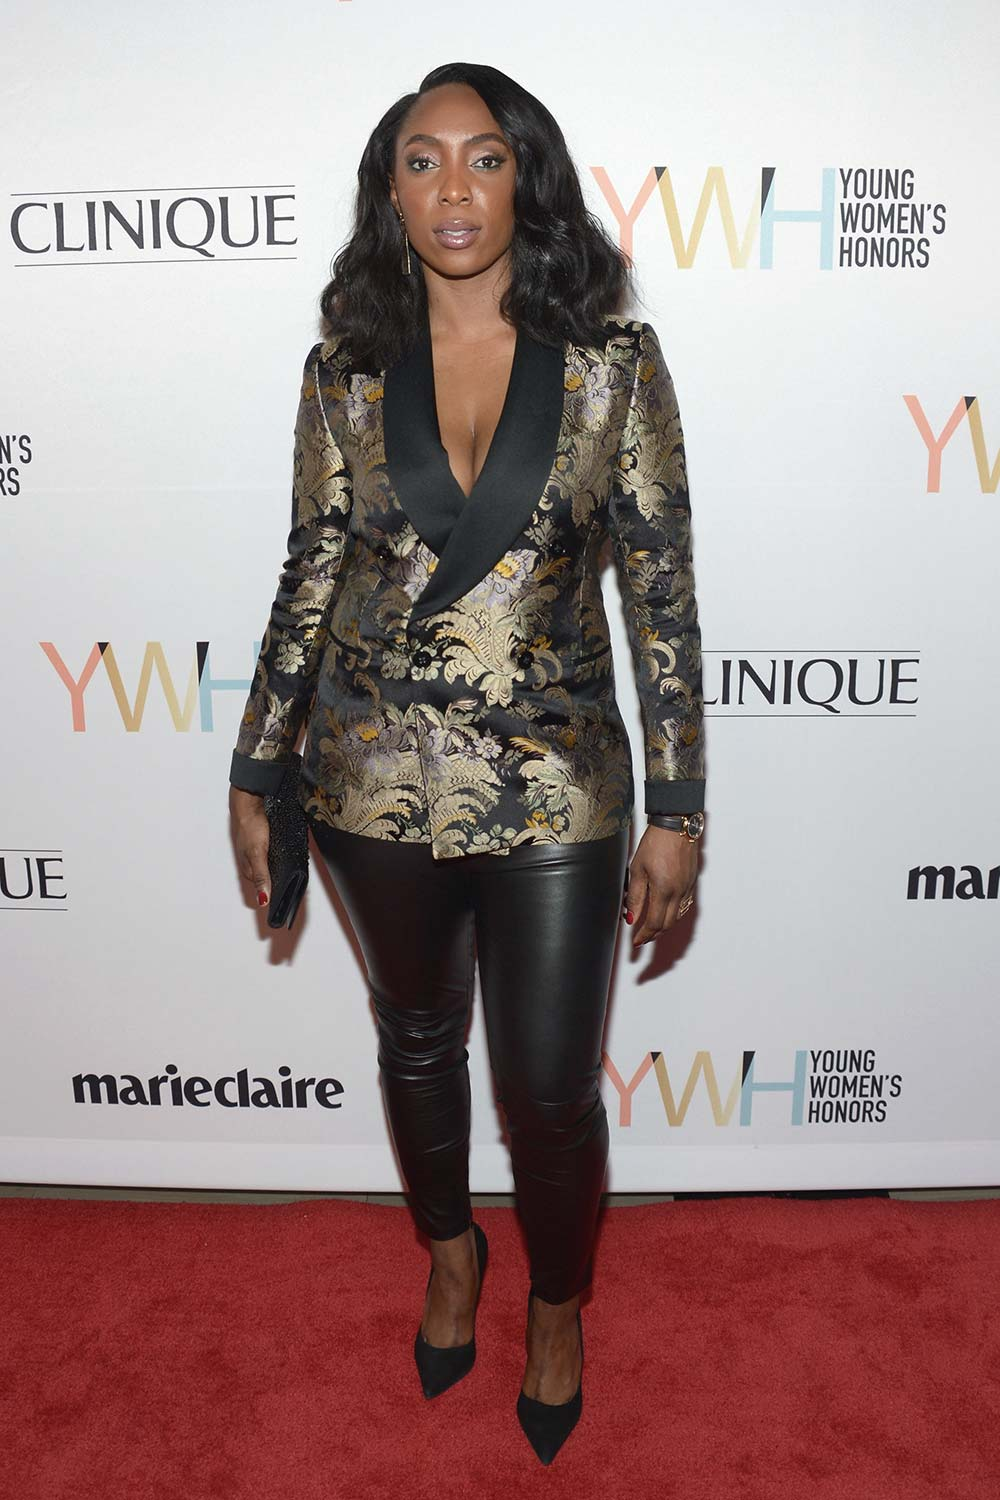 Jessica Matthews arrives at the 1st Annual Marie Claire Young Women's Honors